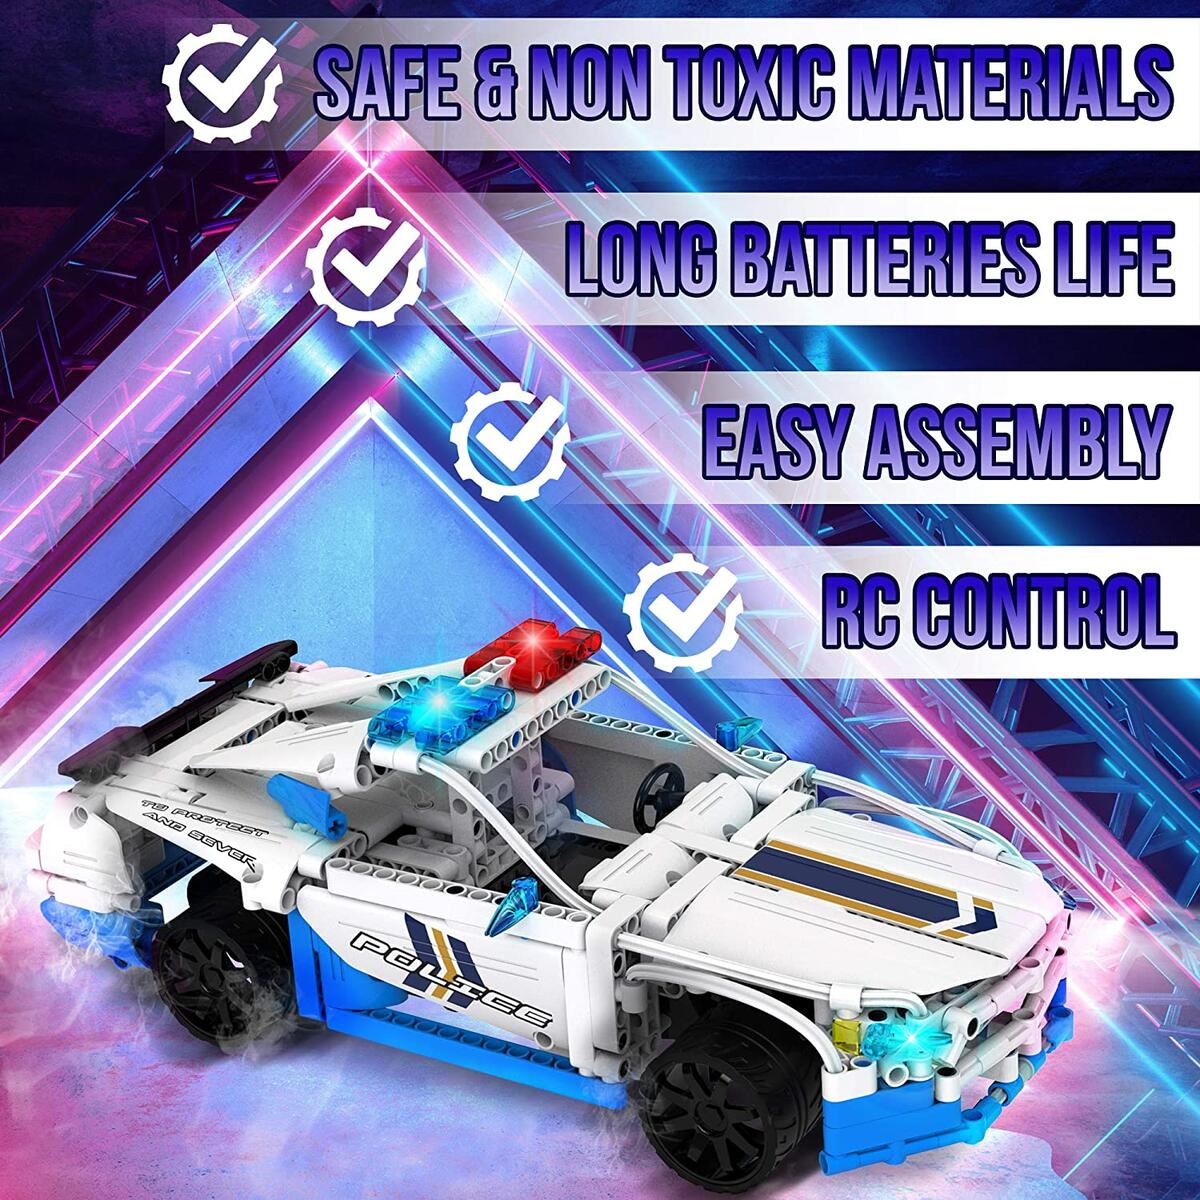 Wrope Creative Model Cars Kits to Build STEM Car Building Kit 430 Pcs - Remote Control Police Car STEM Toys for Boys and Girls - RC Car Building Set - Ideal Construction Building Toys Gift